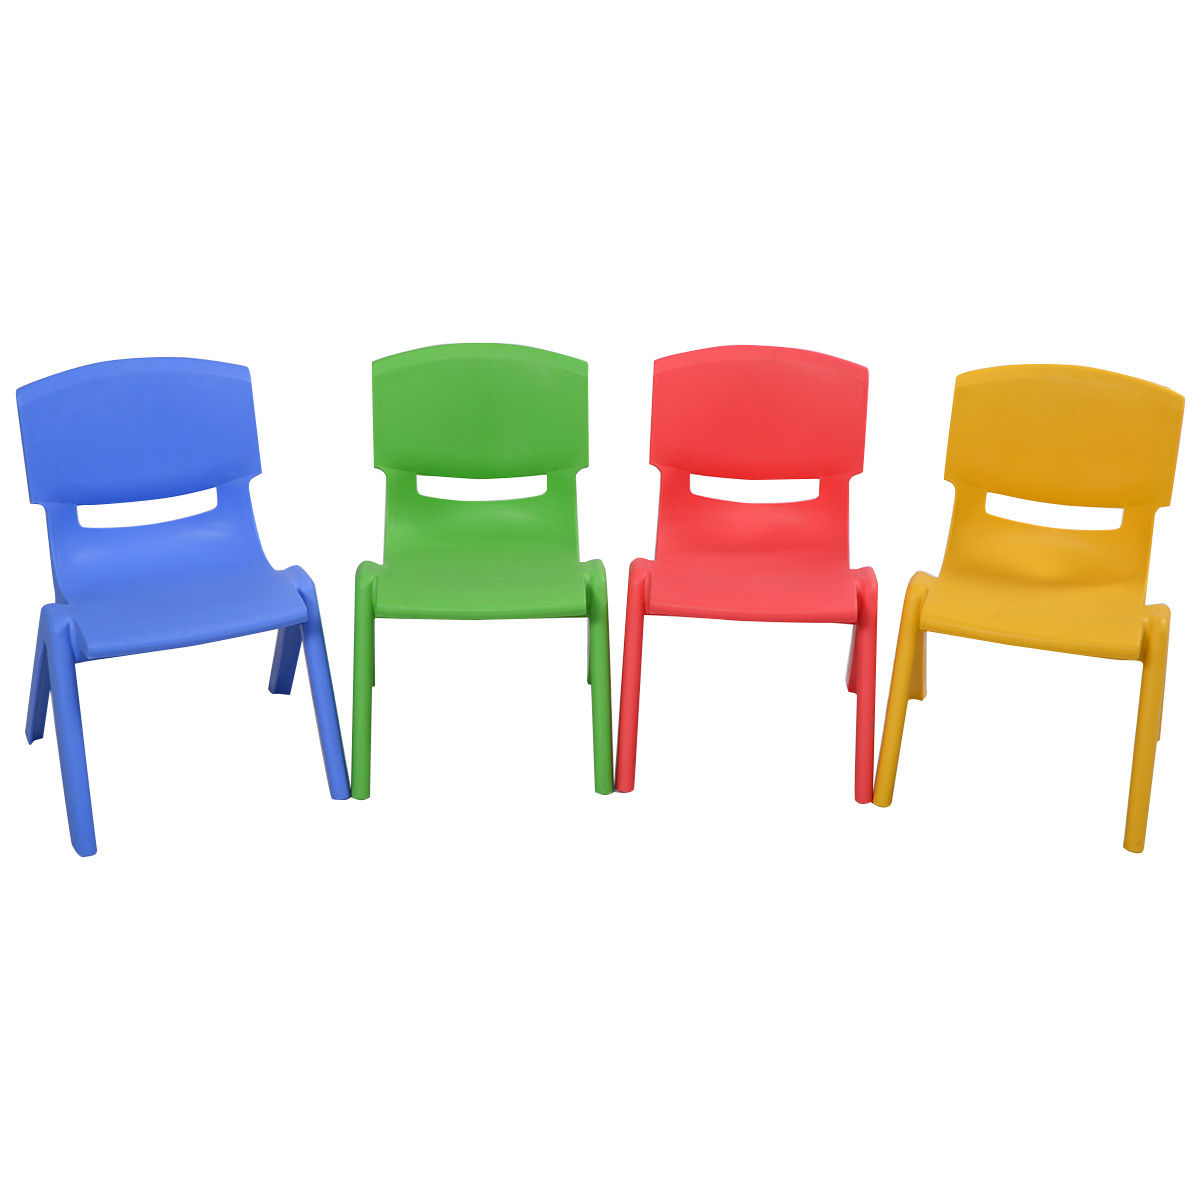 Costway Set Of 4 Kids Plastic Chairs Stackable Play And Learn Furniture Colorful